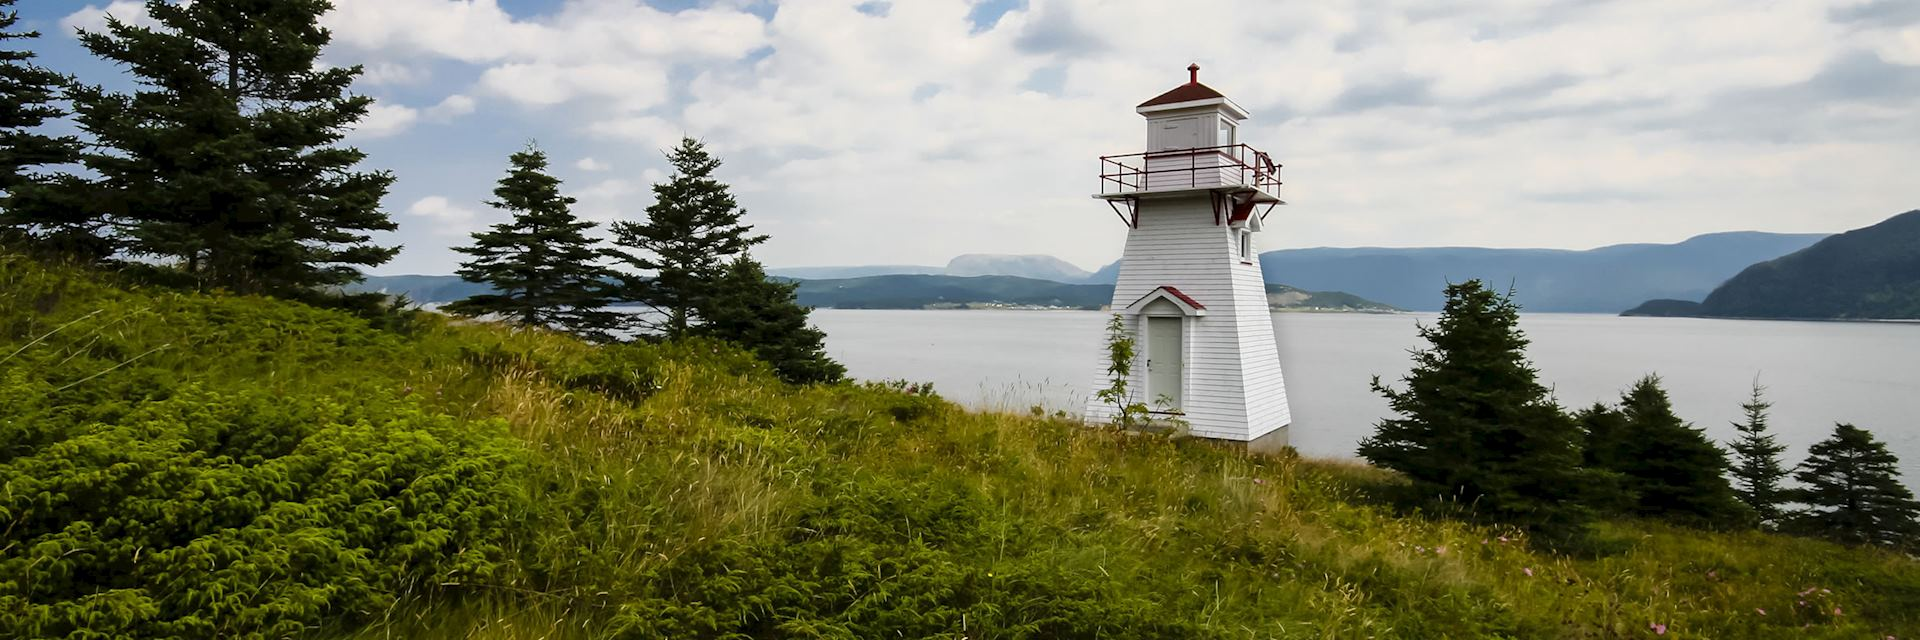 Woody Point Lighthouse, Gros Morne National Park